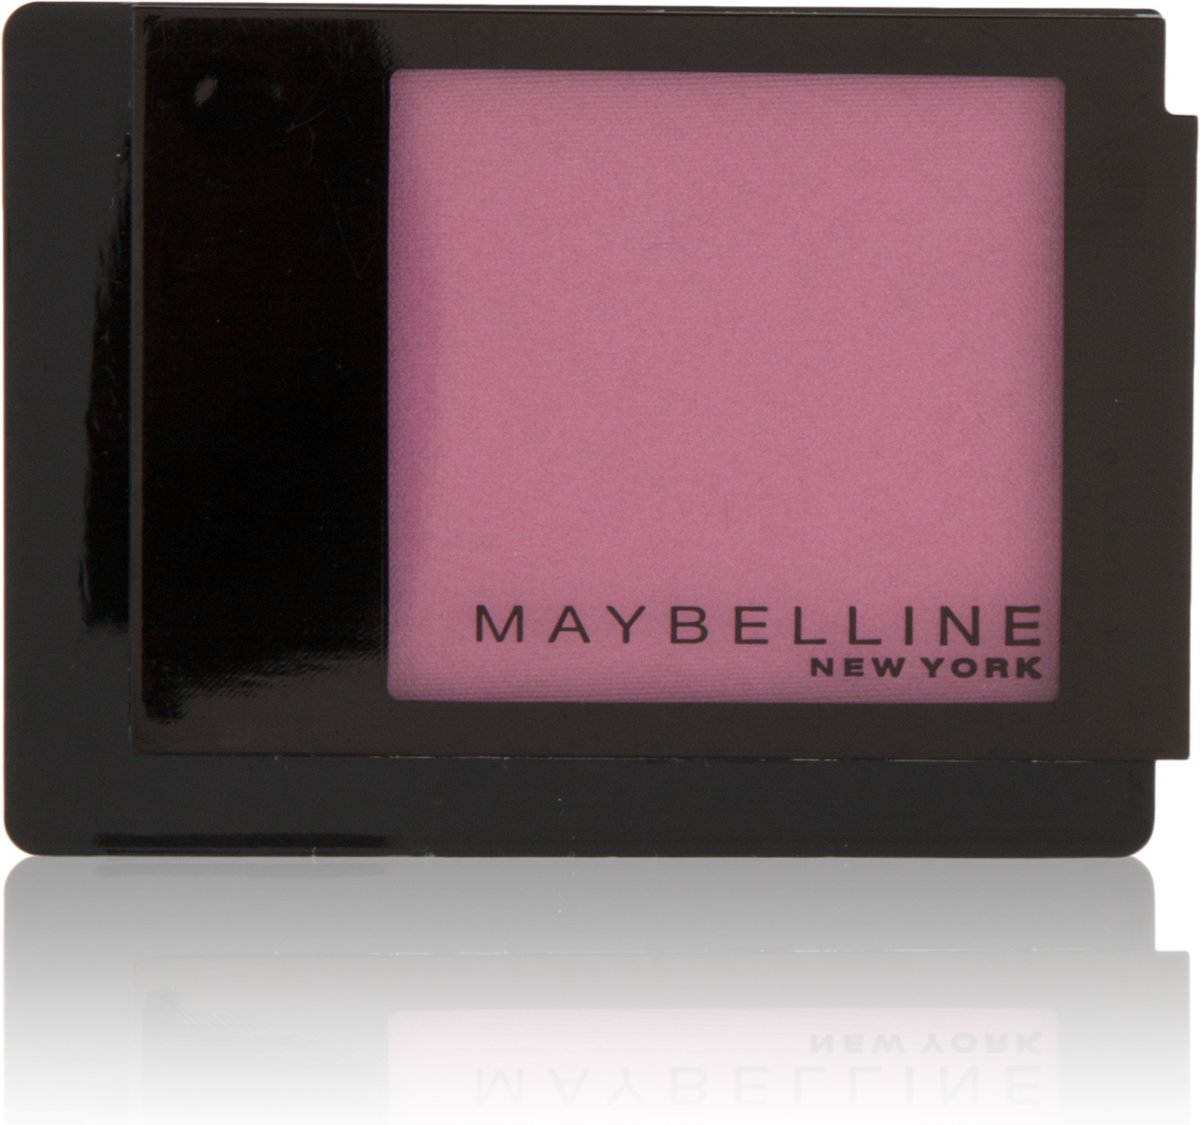 Maybelline Face Studio Masterblush - 70 Rose Madison - Blush